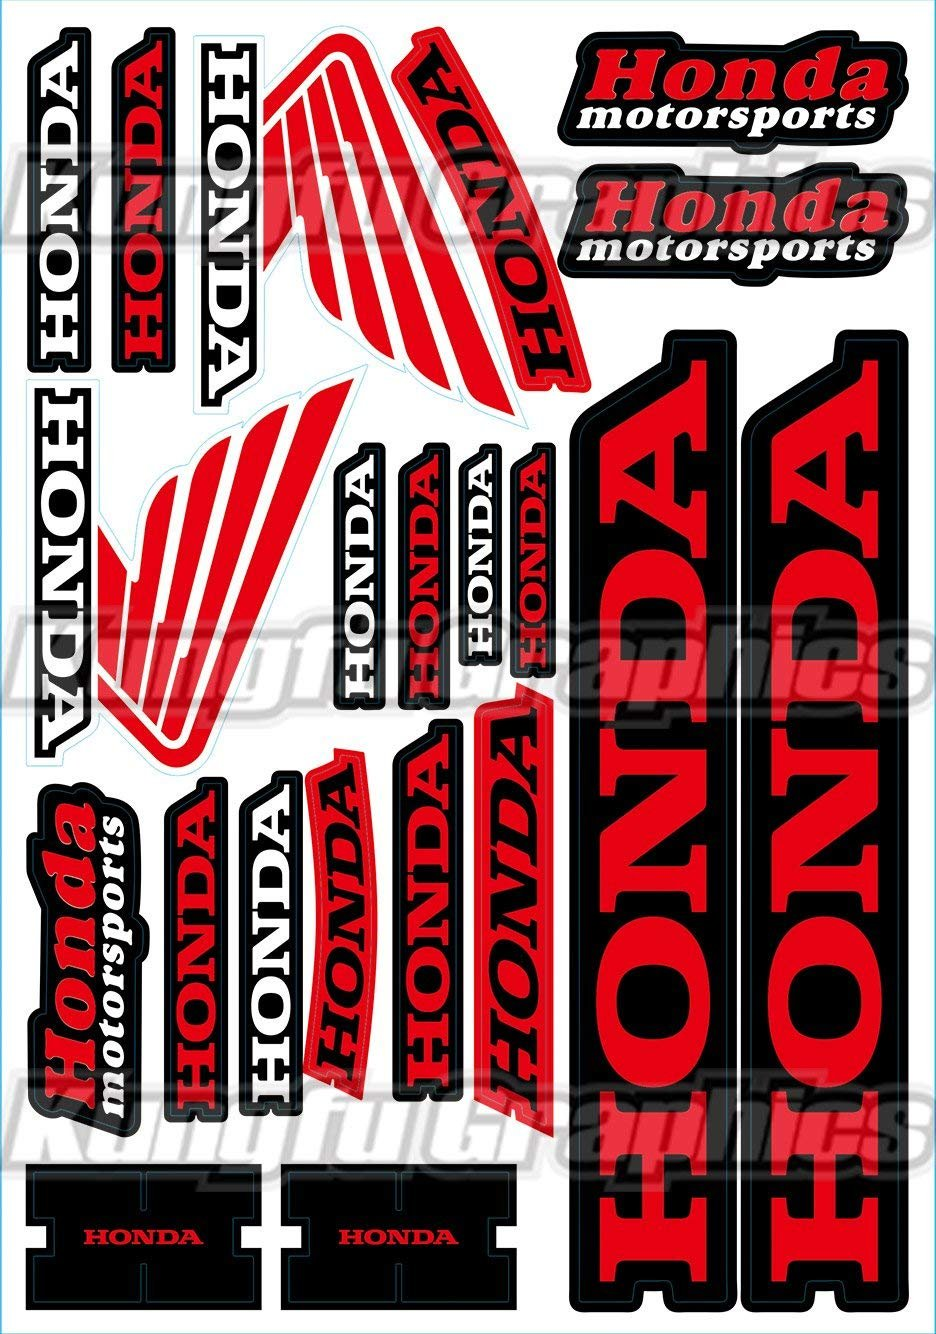 Kungfu Graphics Honda Wings Sponsor Logo Racing Sticker Sheet Universal (7.2x 10.2 inch), Red Black